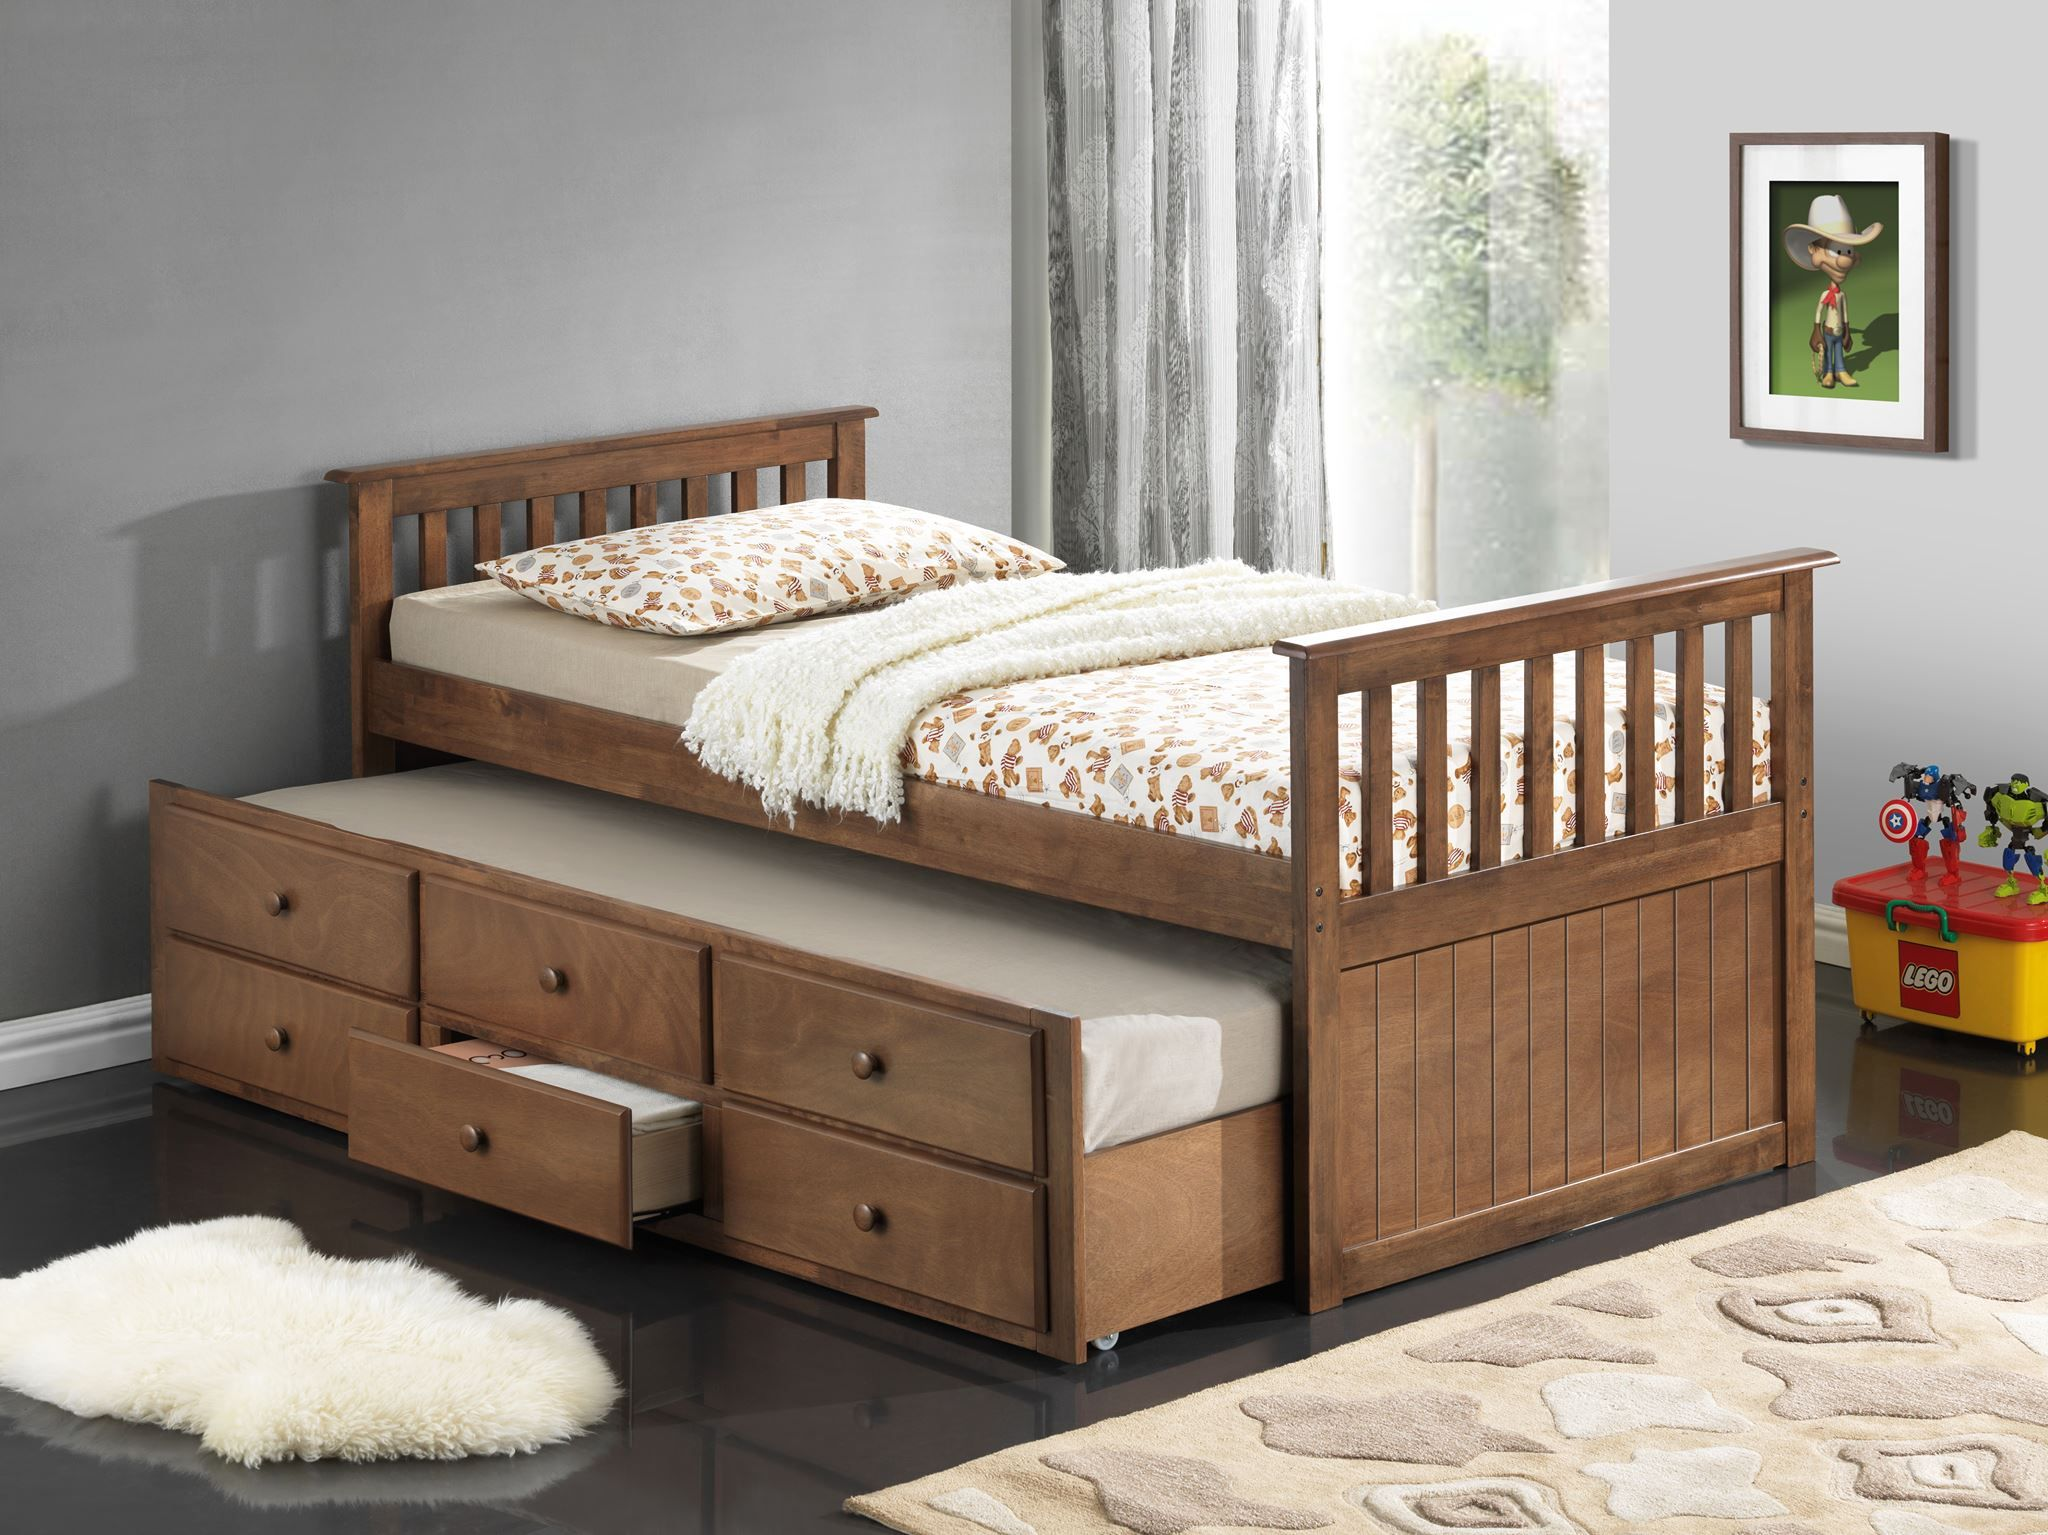 Favourites With Images Kid Beds Trundle Bed Twin Captains Bed